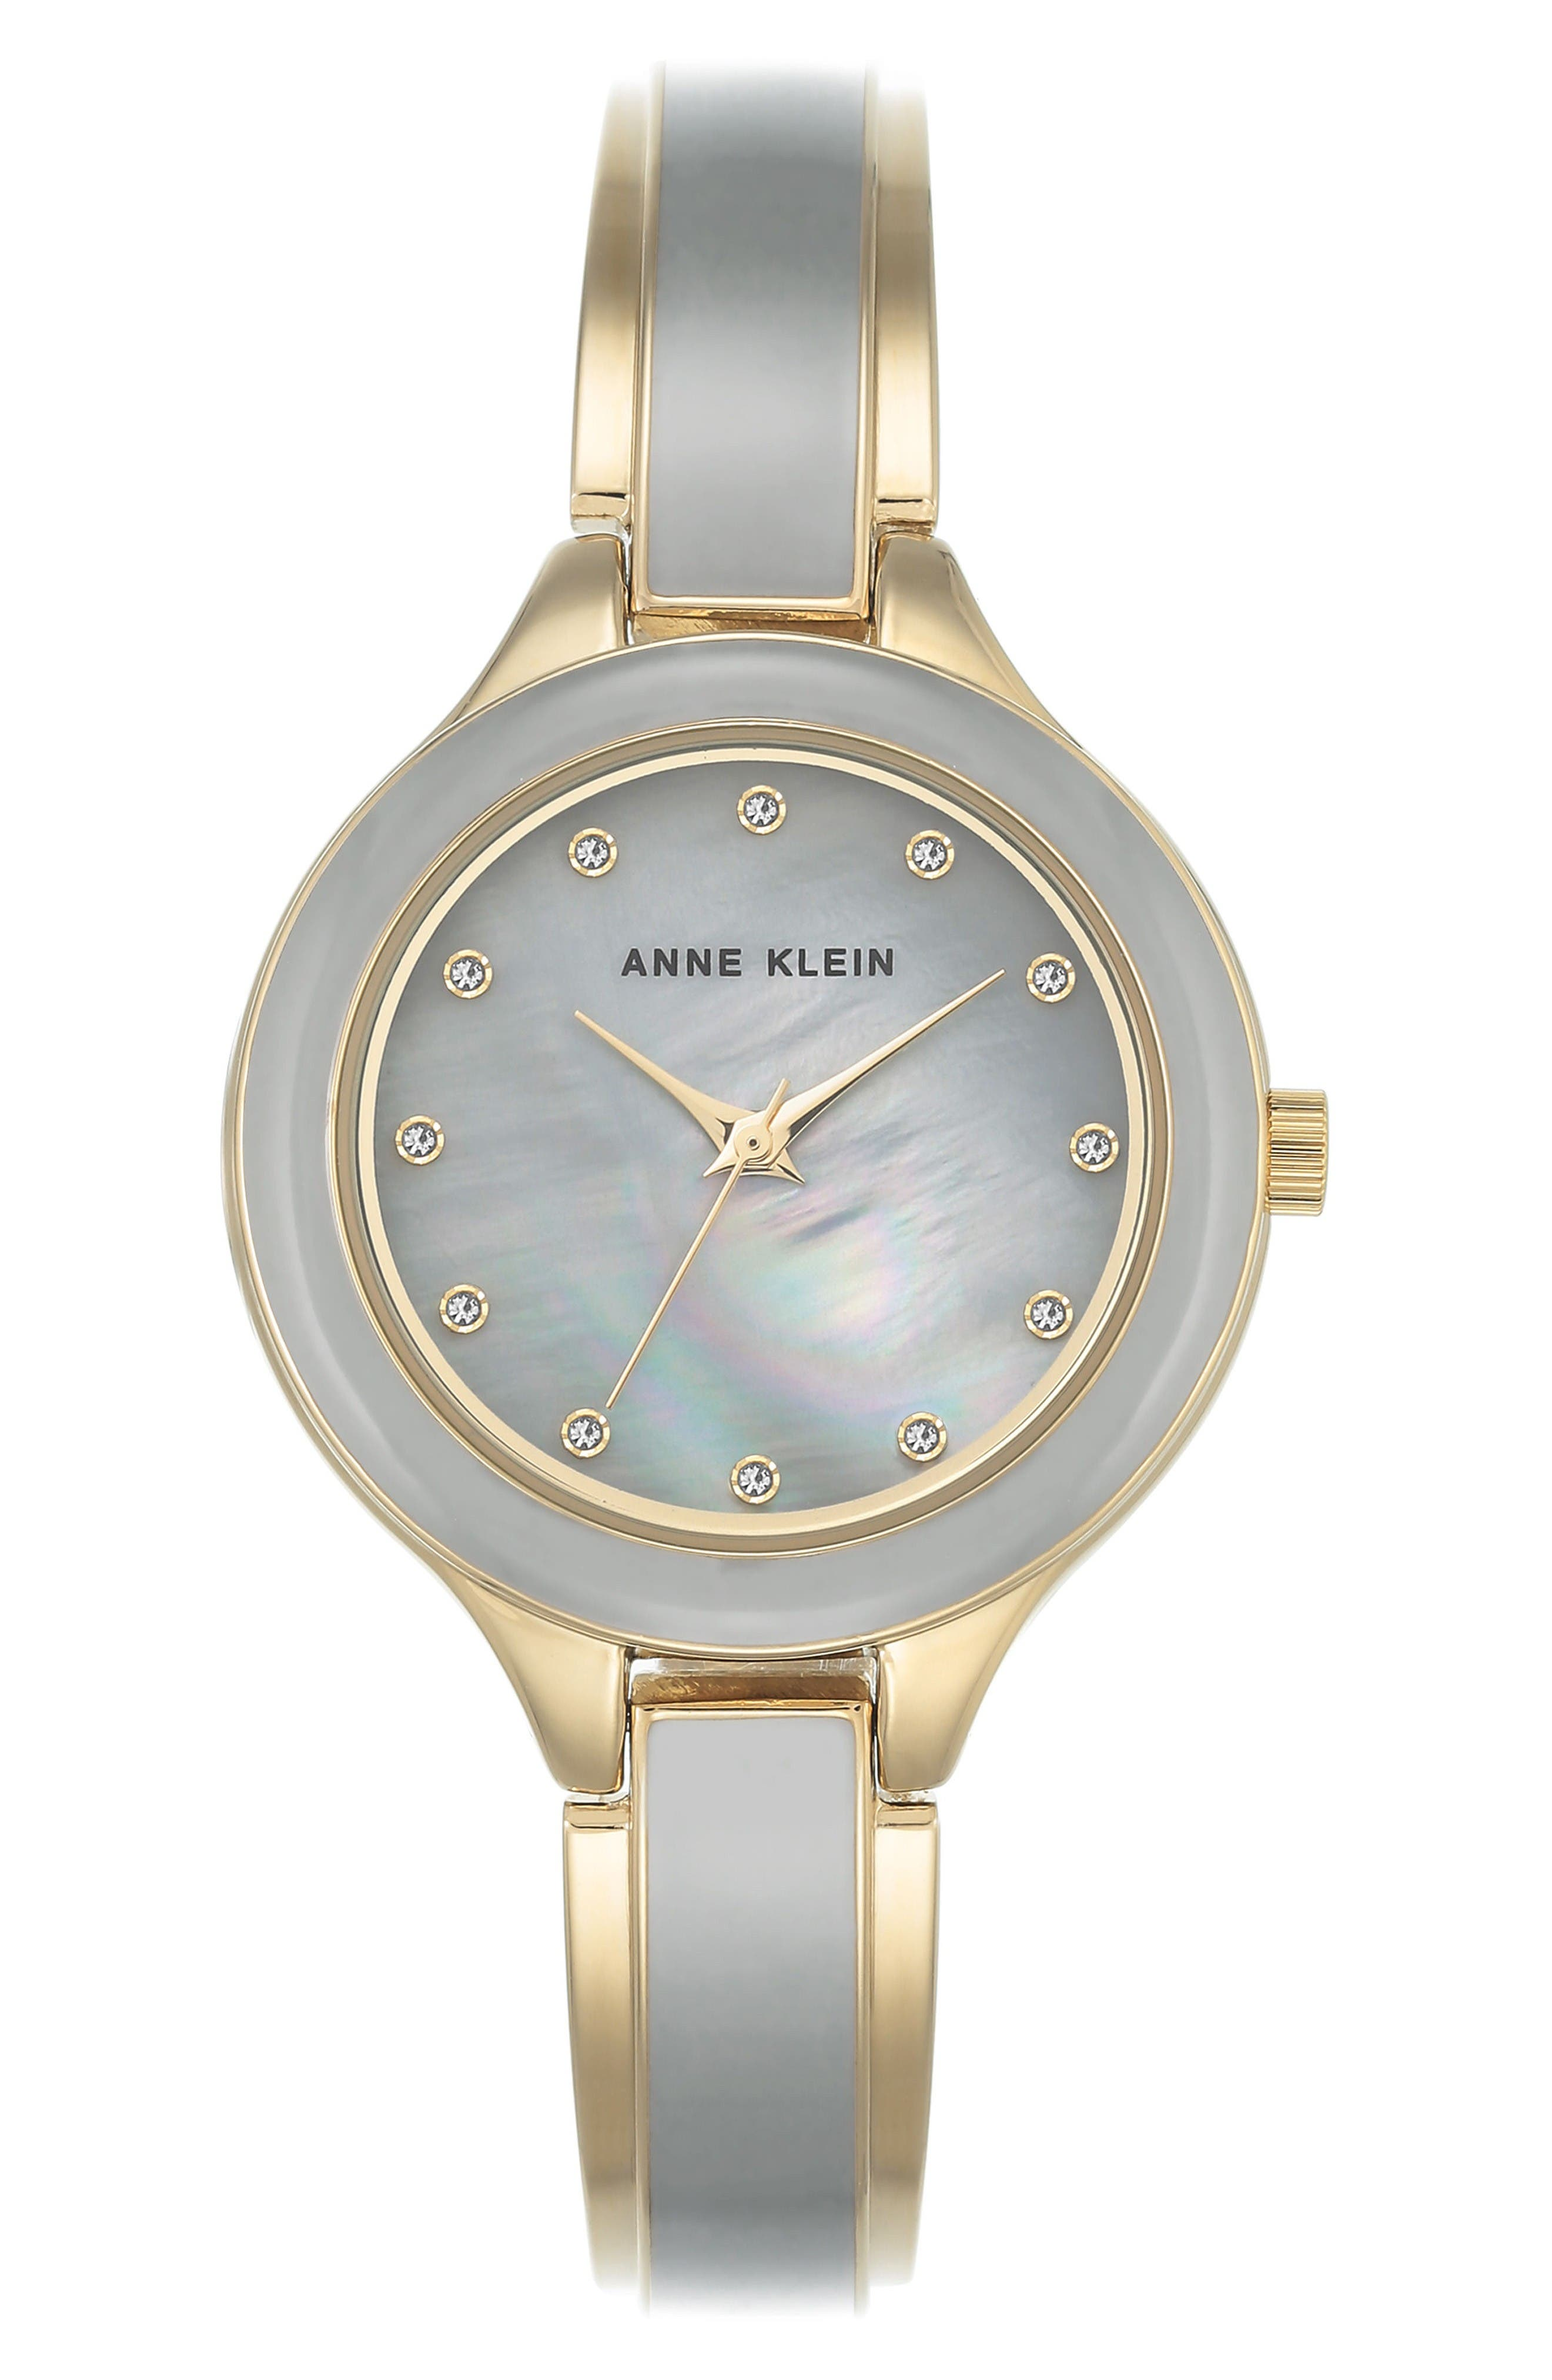 ANNE KLEIN Enamel Bangle Watch, 32mm